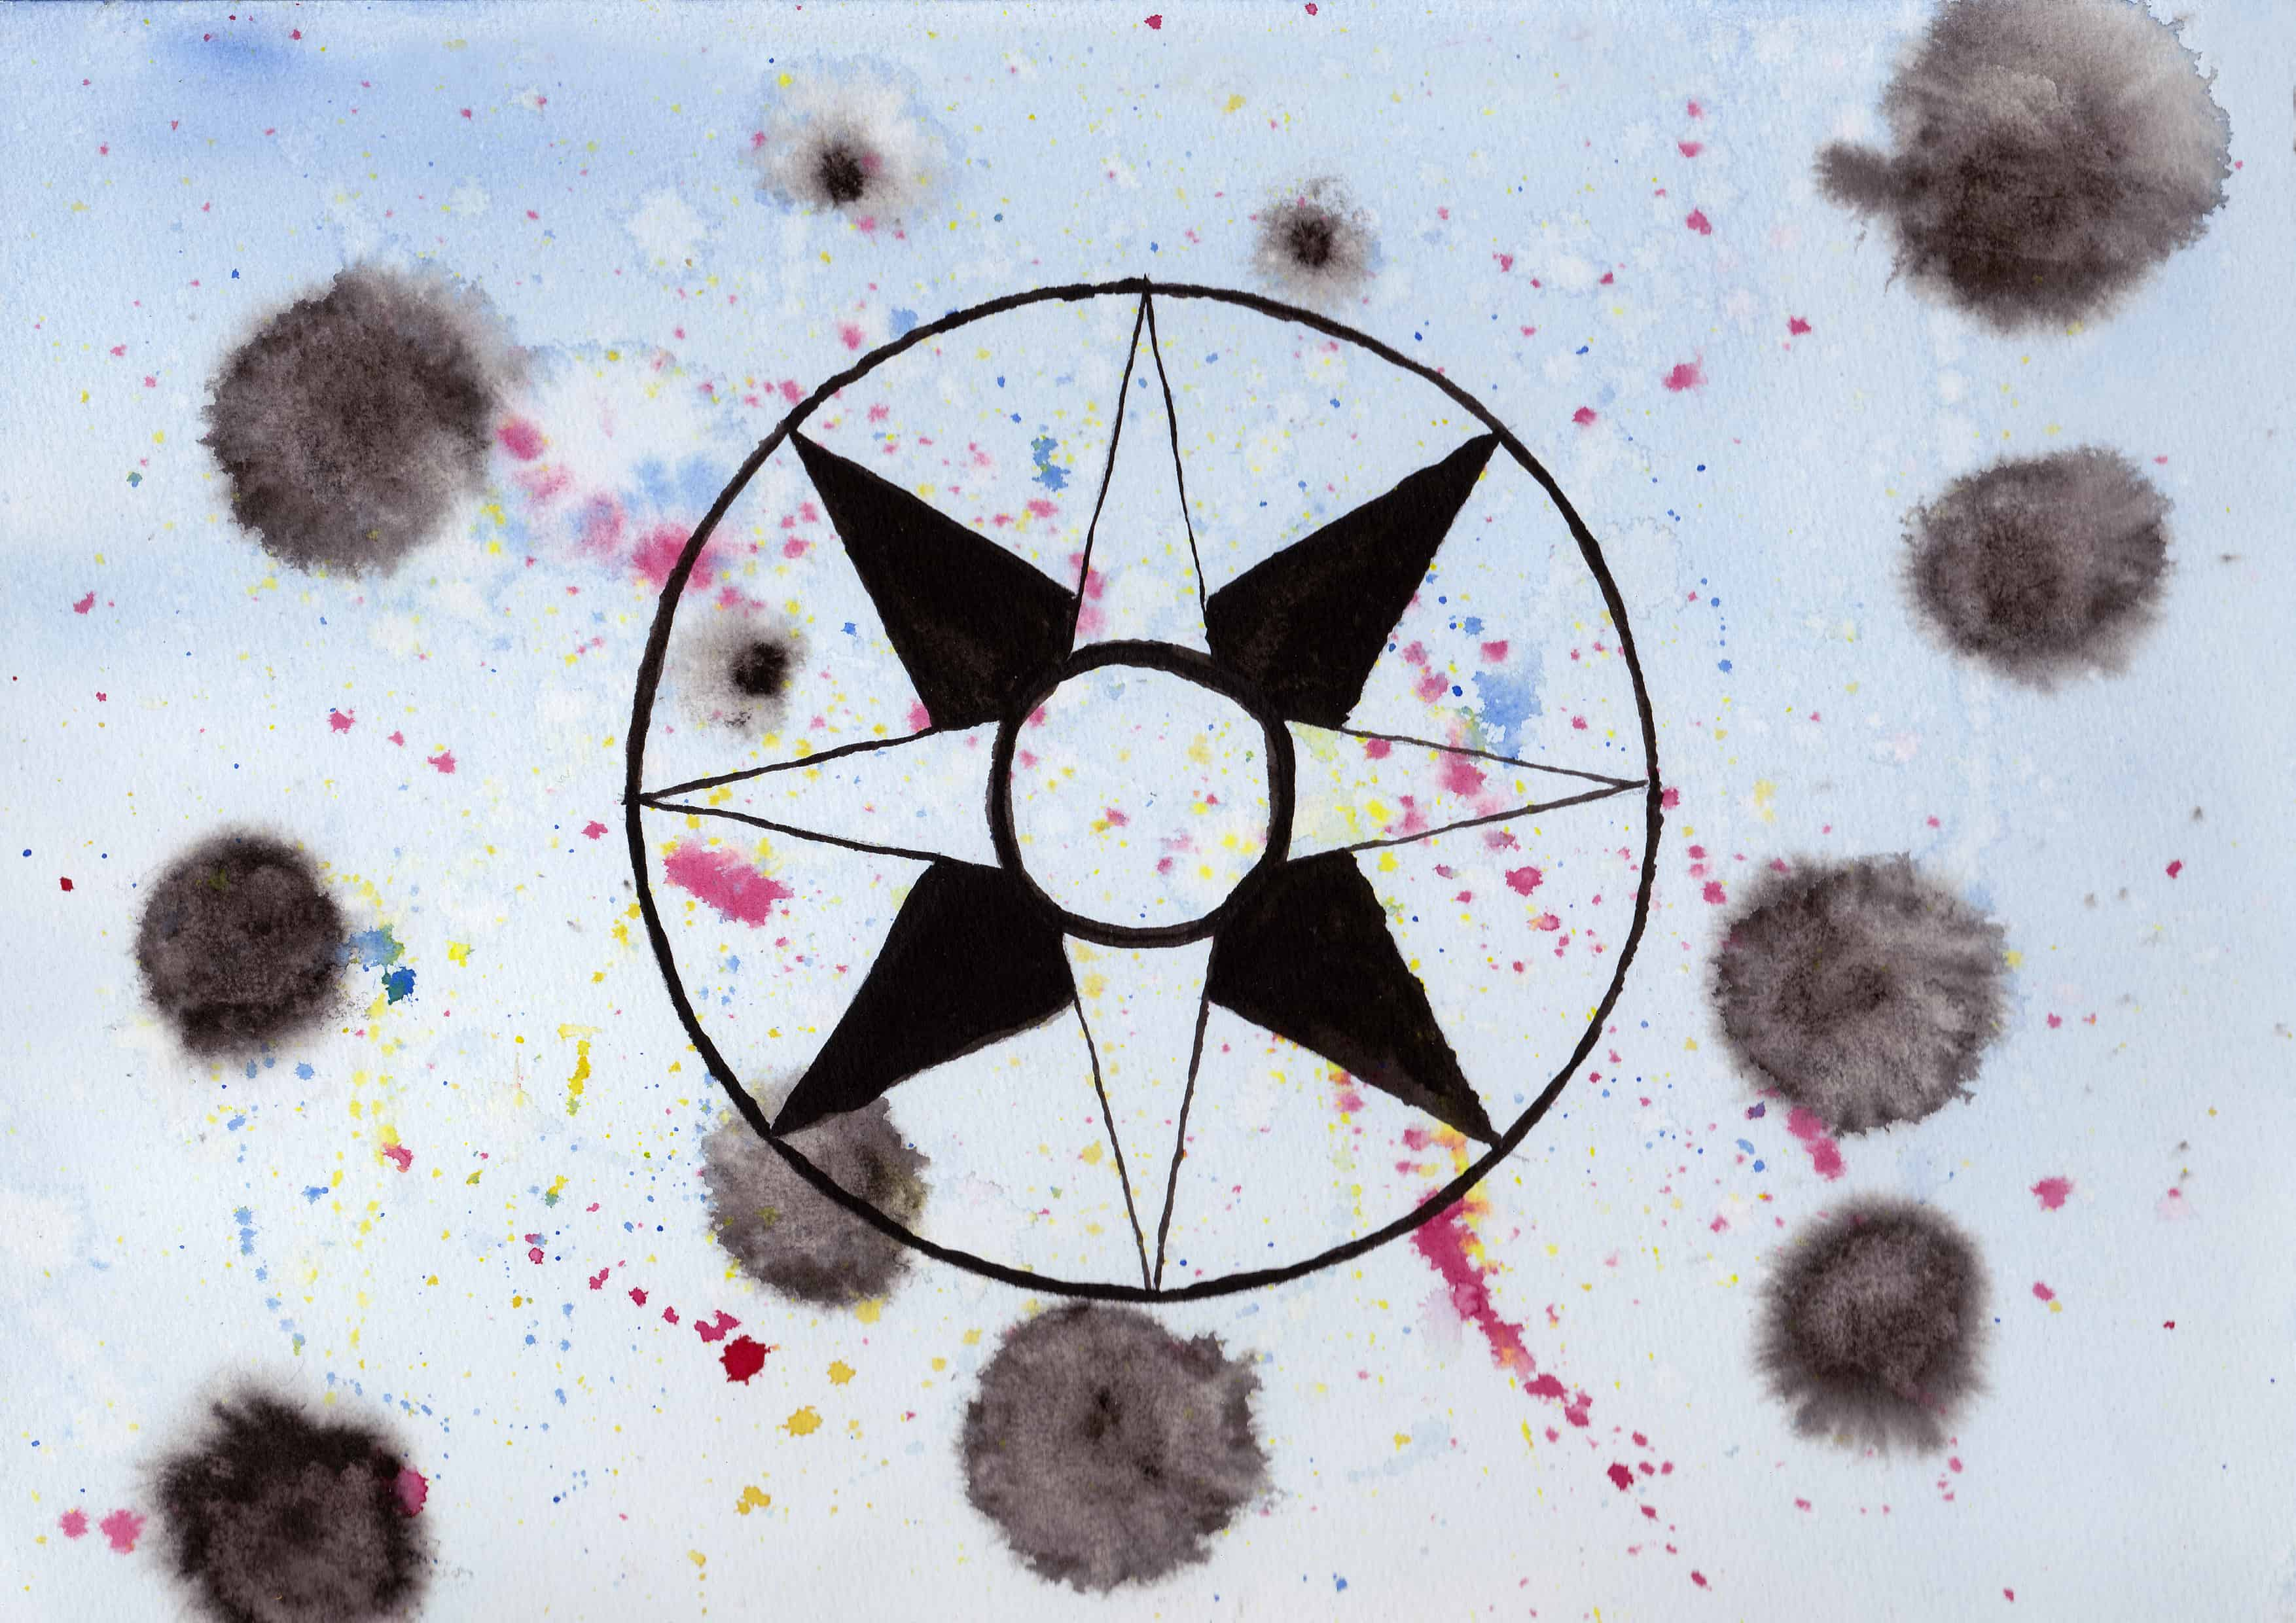 Star Disc of Ishtar - 100 Sacred Symbols in Watercolour by Linda Ursin